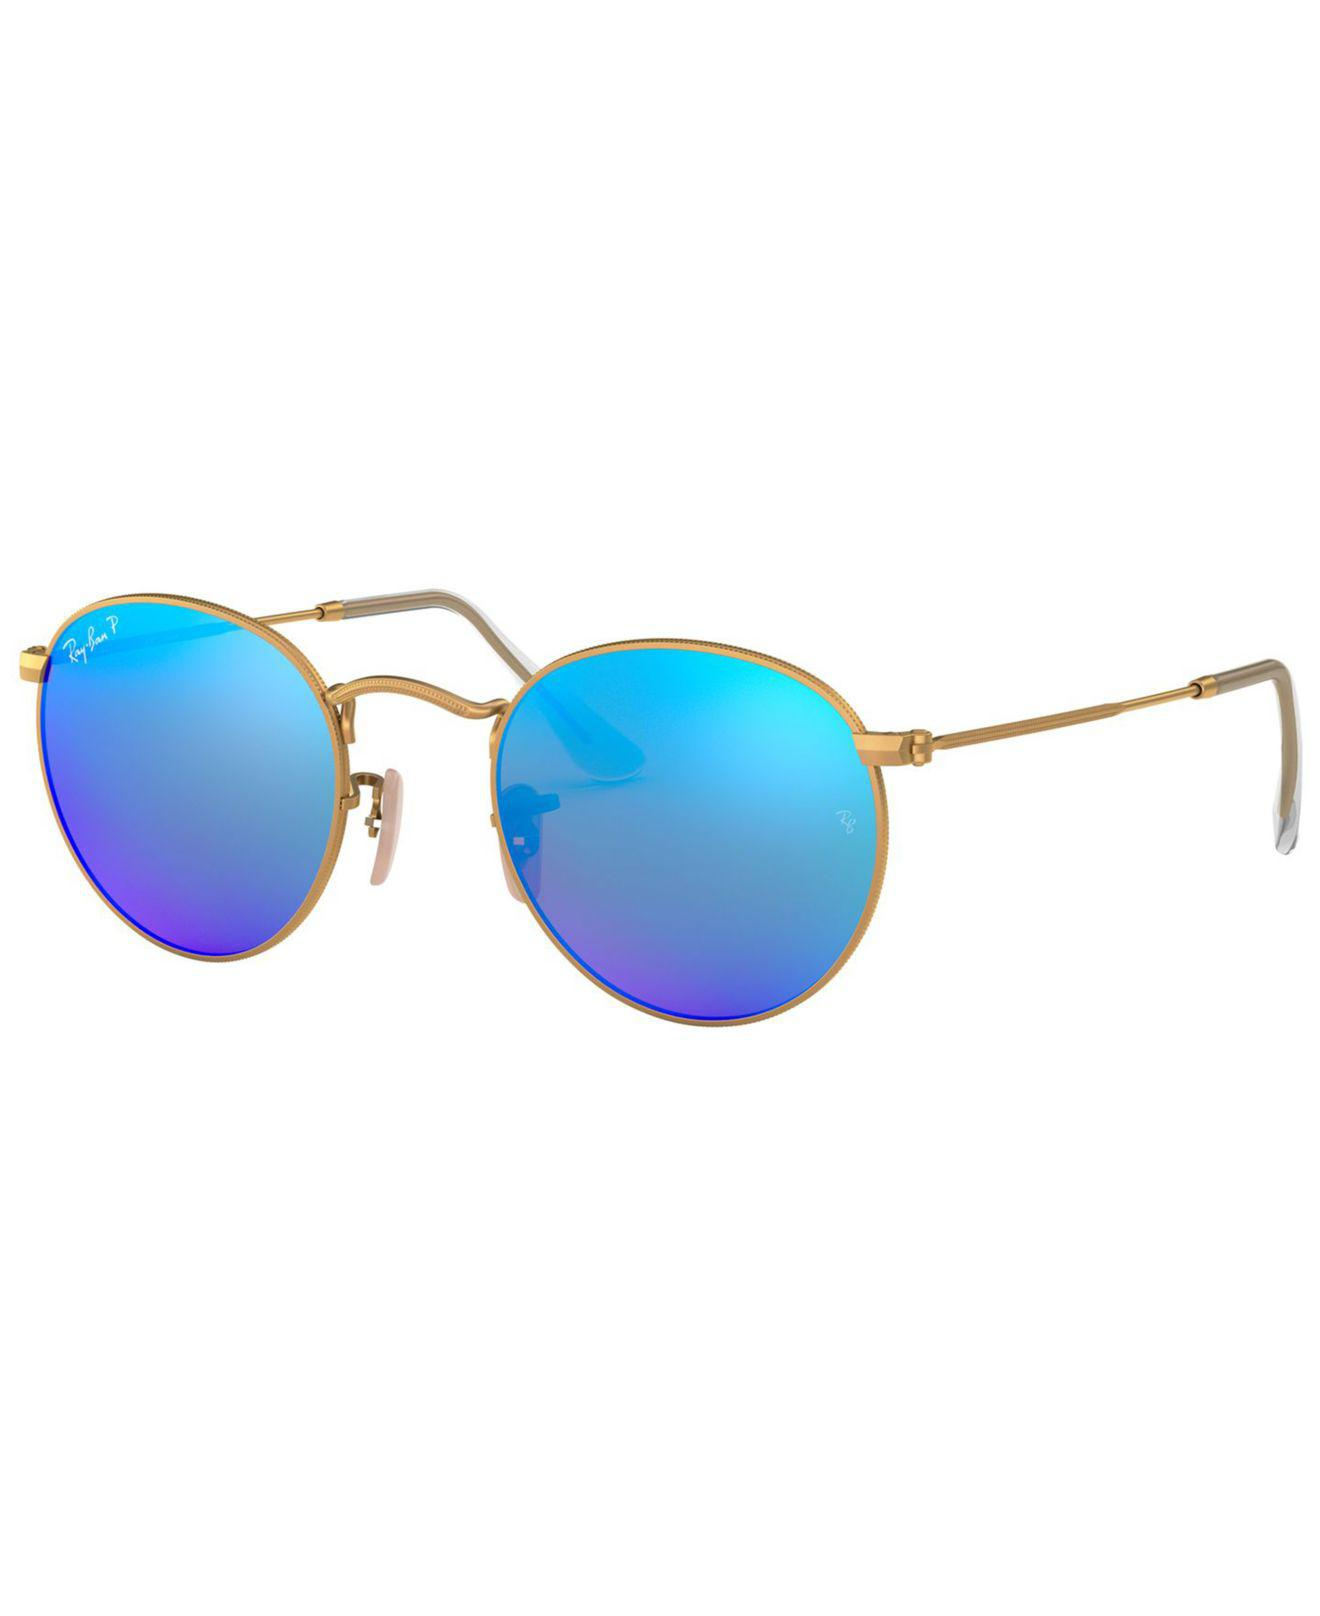 f9ee453141 Ray-Ban. Women s Blue Polarized Round Metal Sunglasses ...